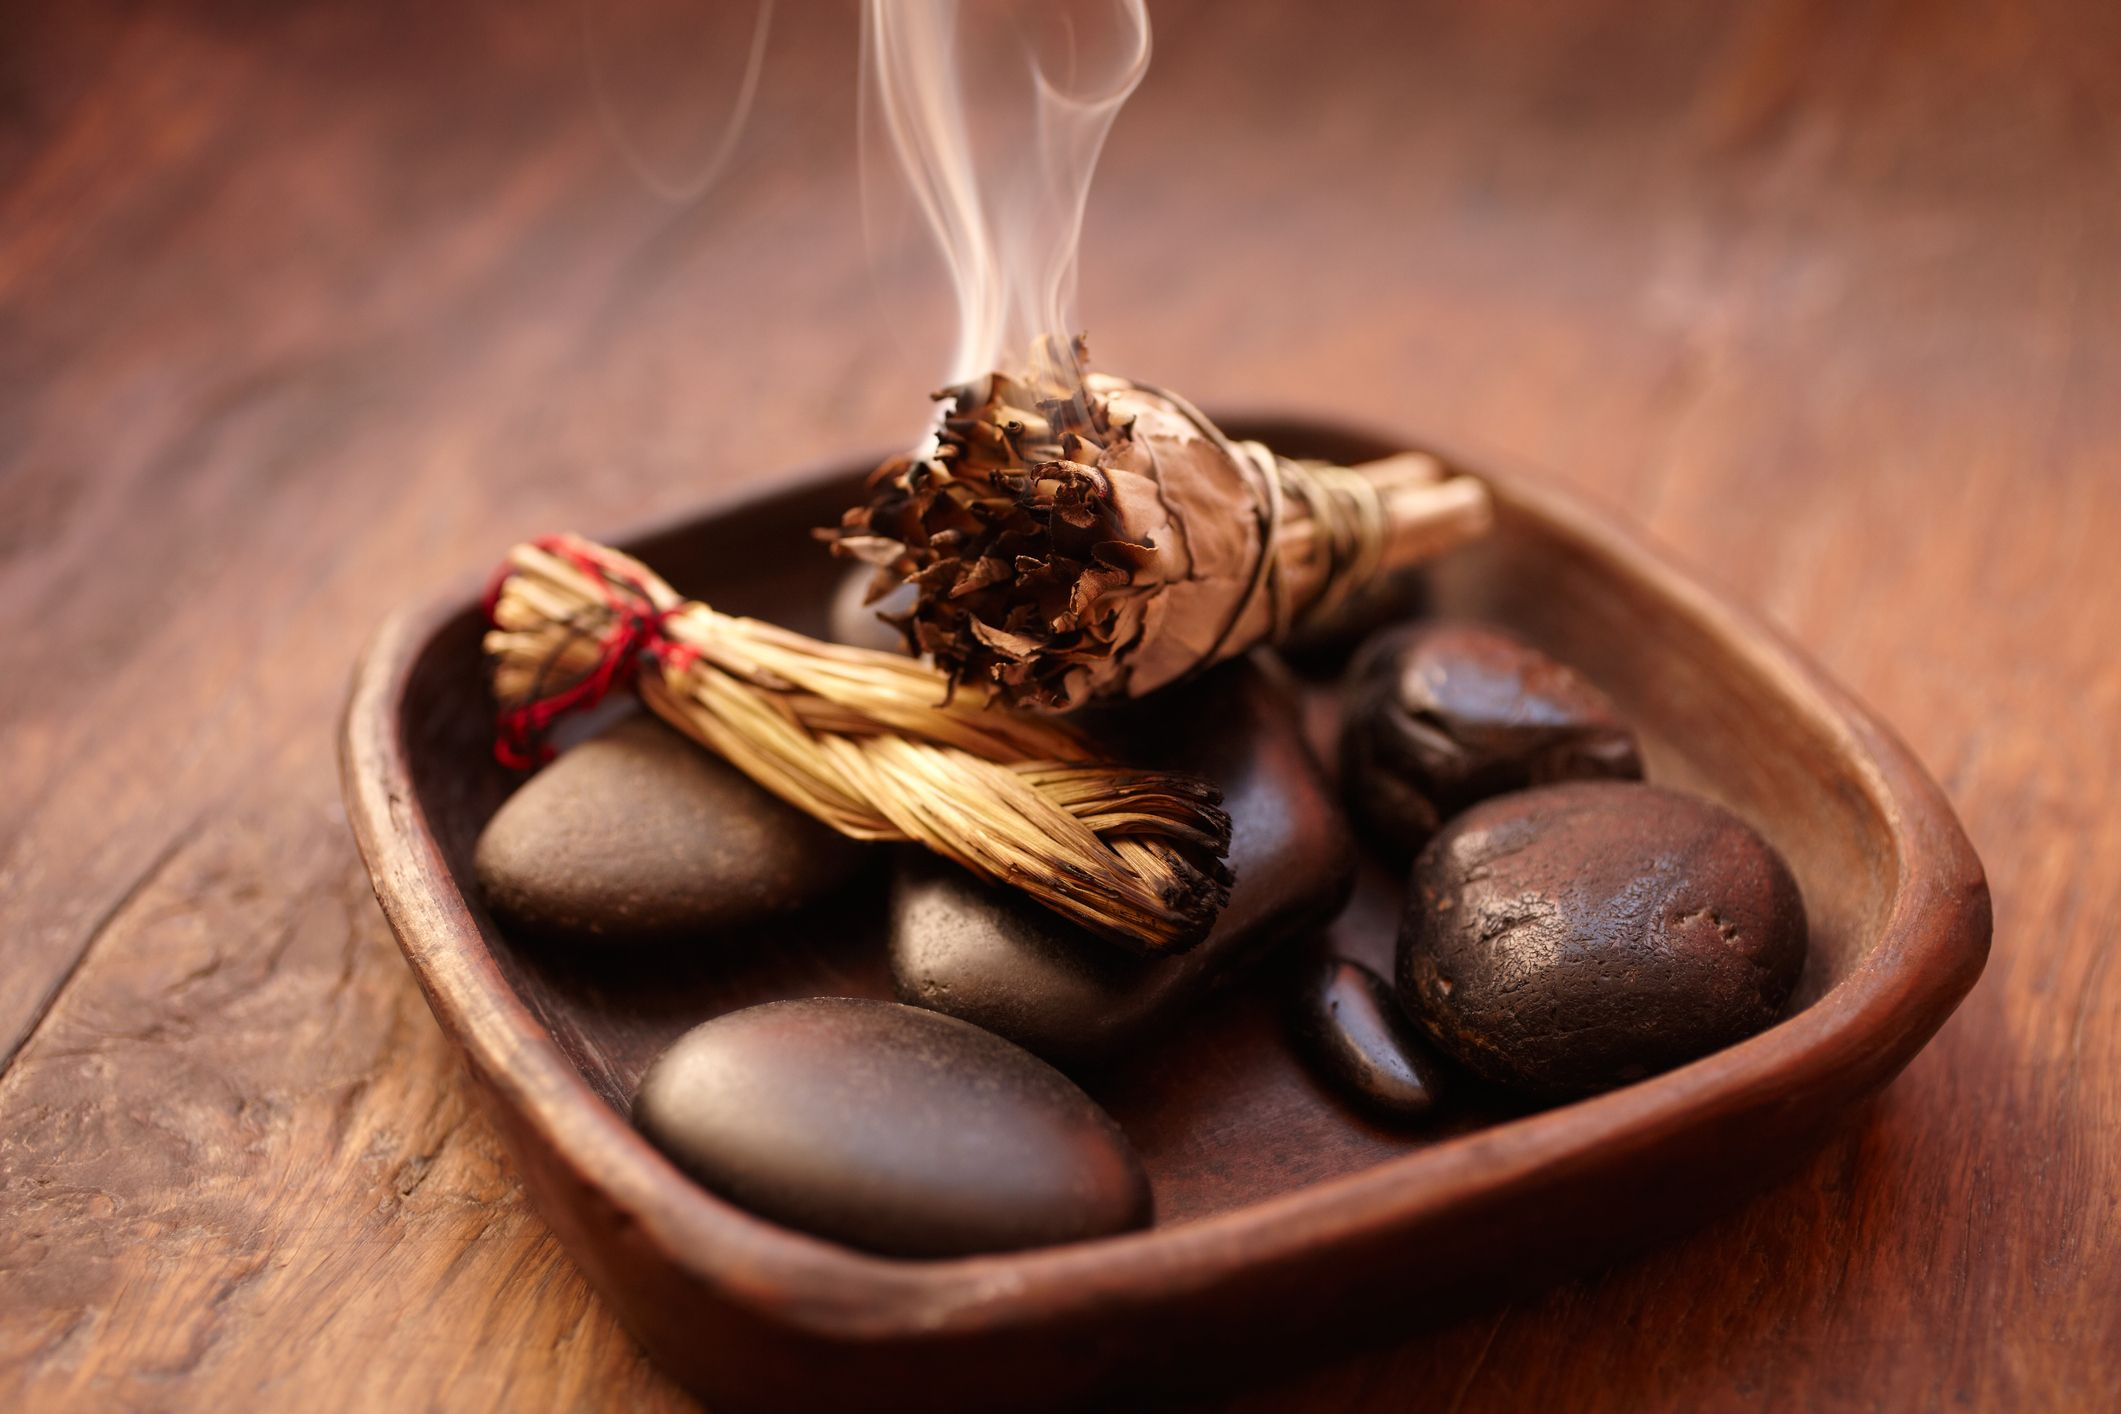 Sage Smudging 101: How To Sage Your House And Rid It Of Bad Juju